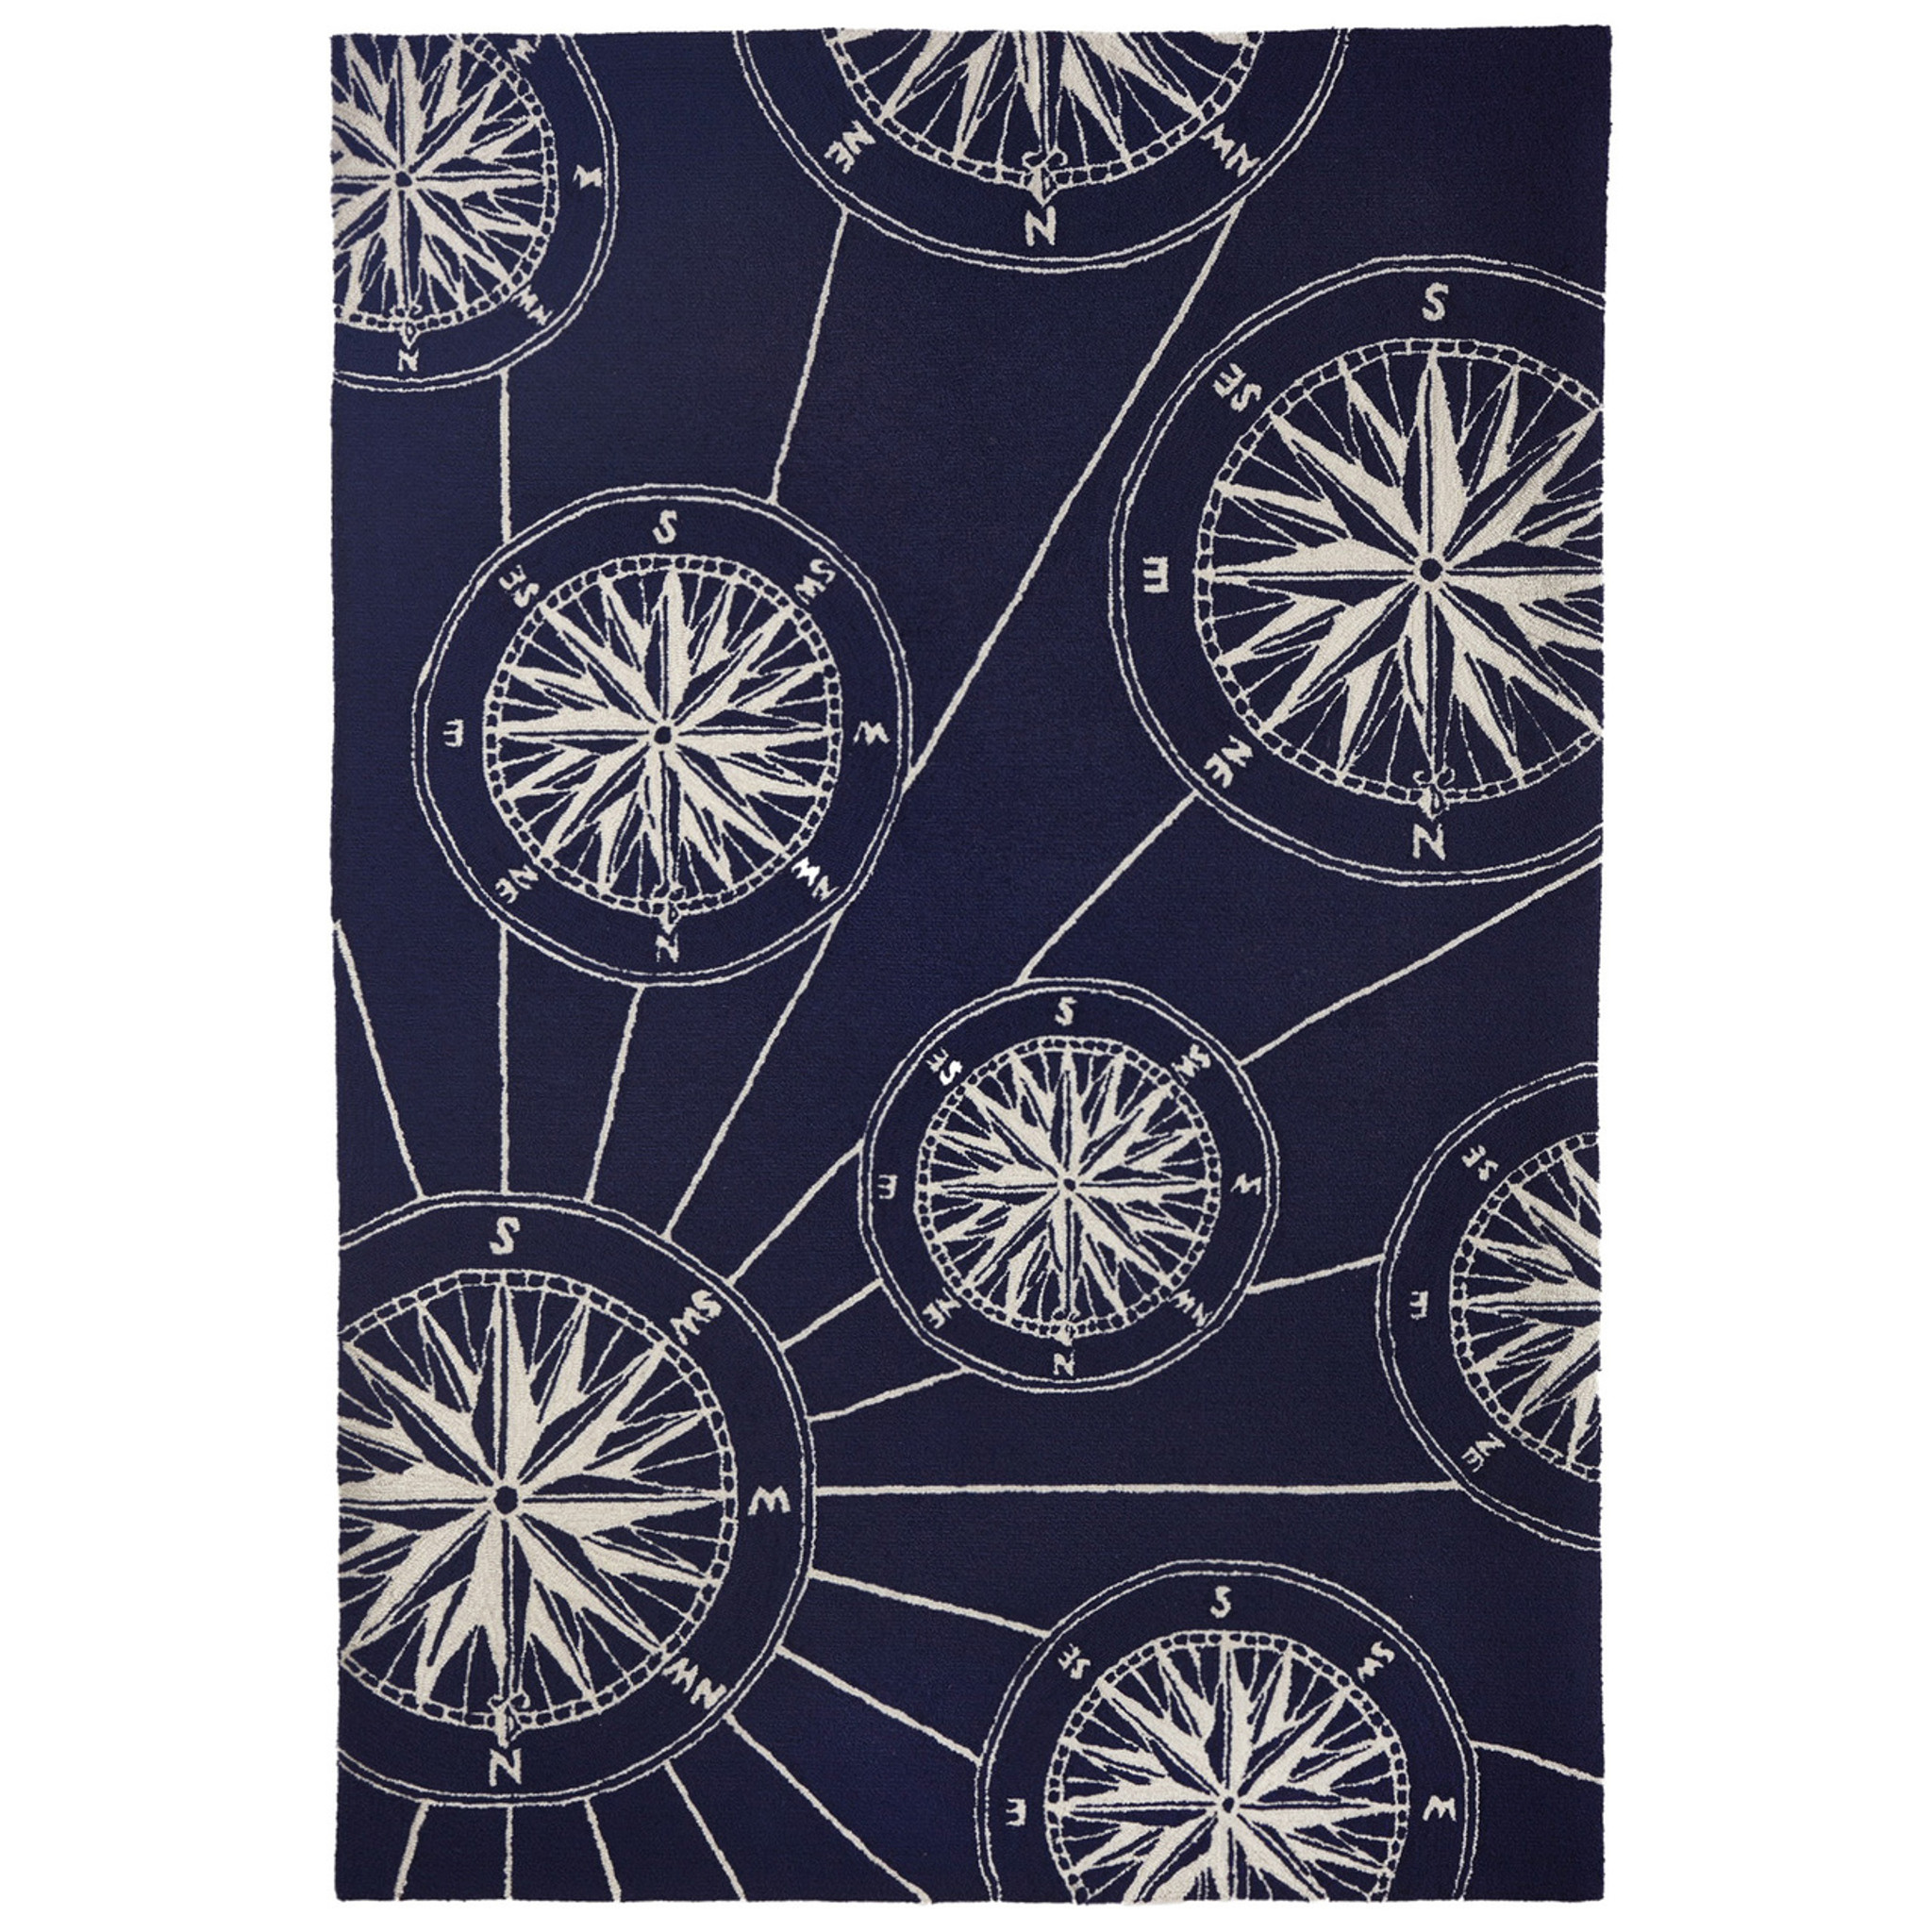 Compass Rose Navy Blue And White Nautical Area Rug